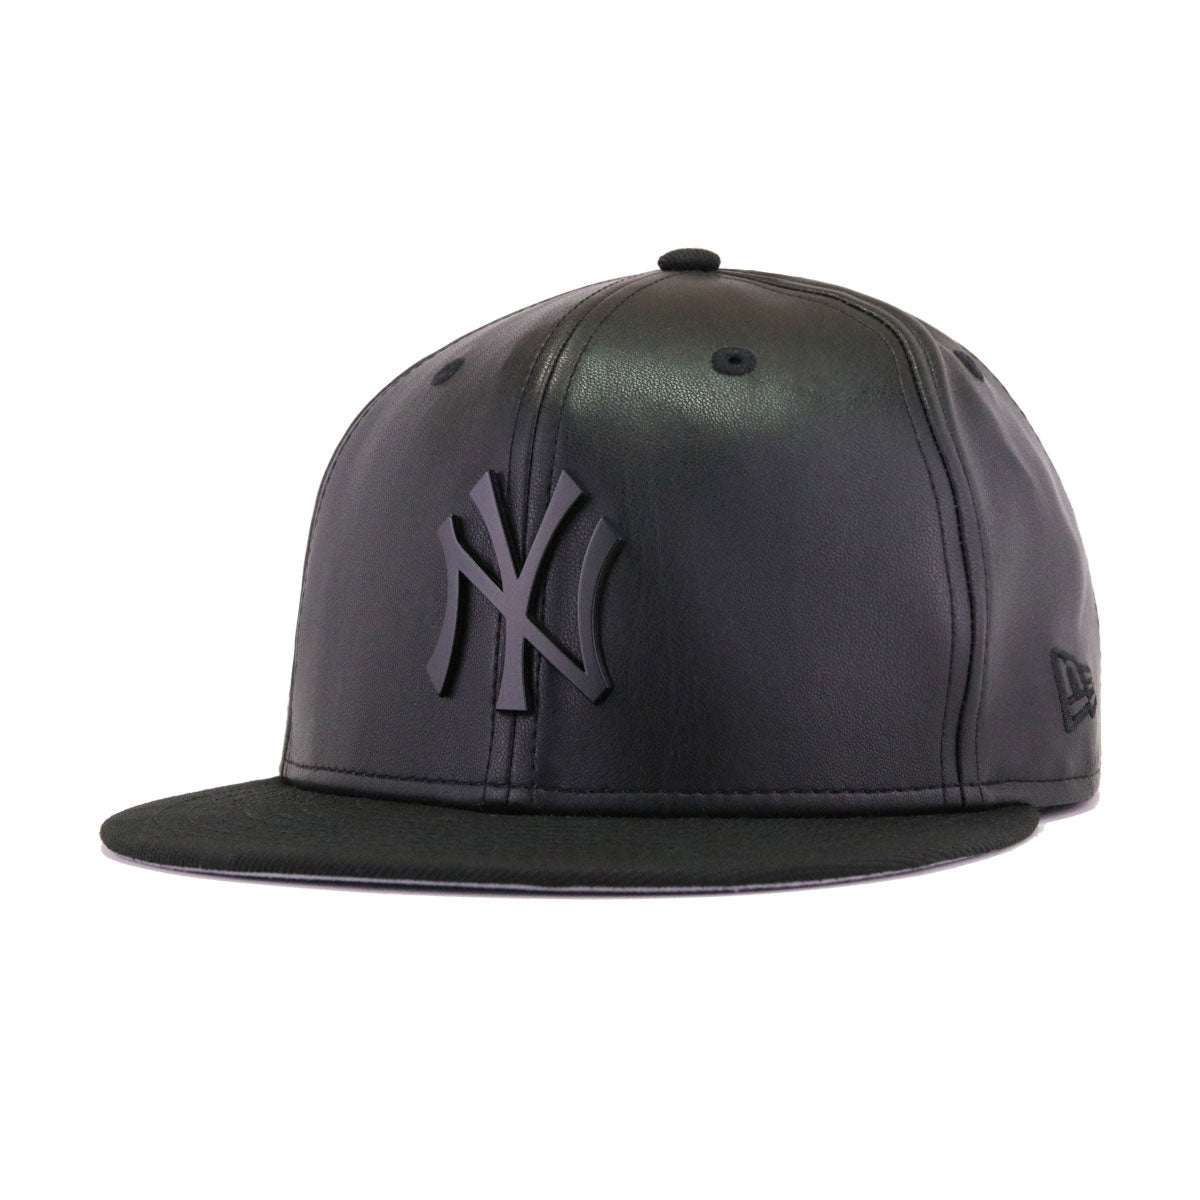 New York Yankees Black Faux Leather Black Metal Badge New Era 59Fifty Fitted